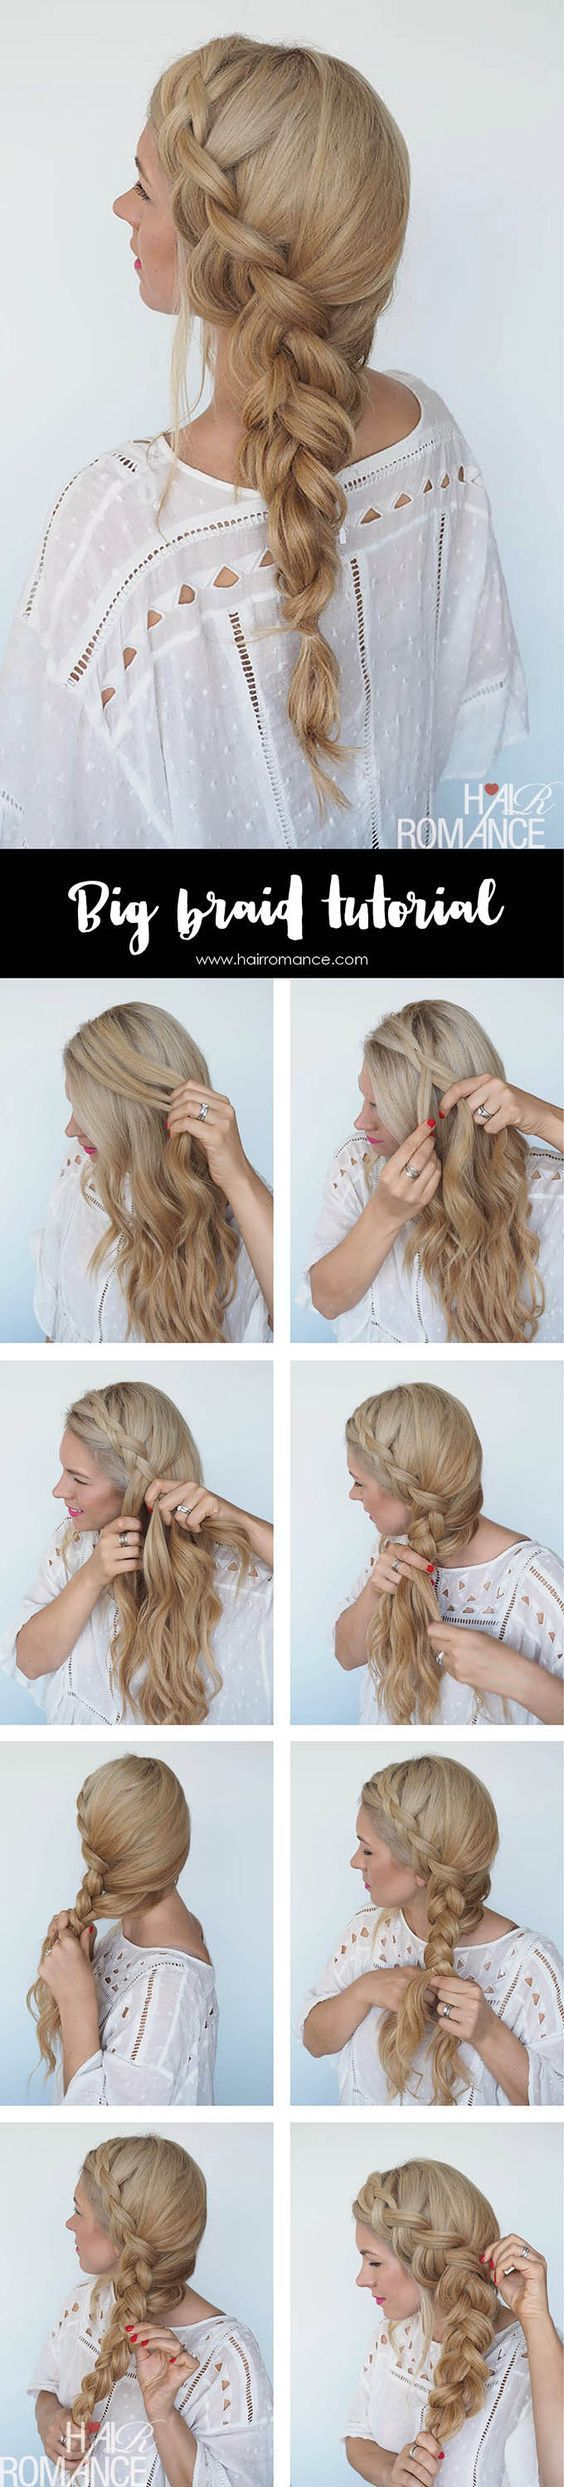 Strive New Hairstyles – 23 Braid Tutorials For A Model New Look On Upcoming Occasions And Informal Days